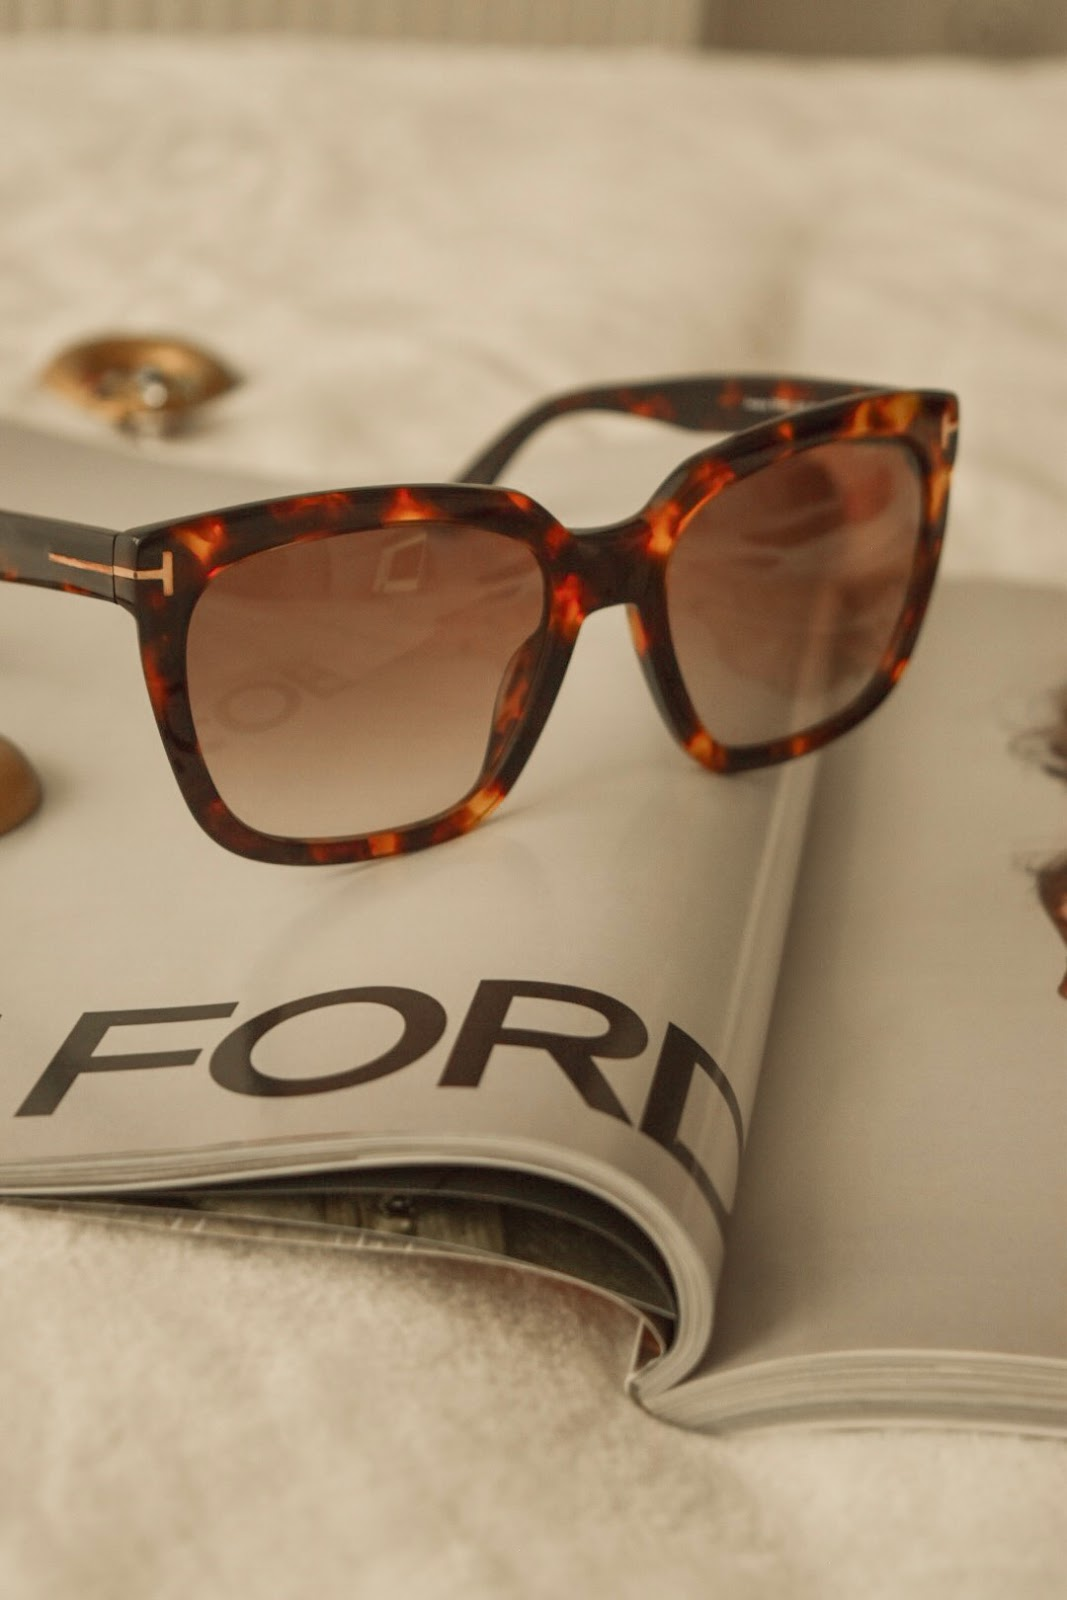 Tom Ford Sunglasses From SunglassesShop